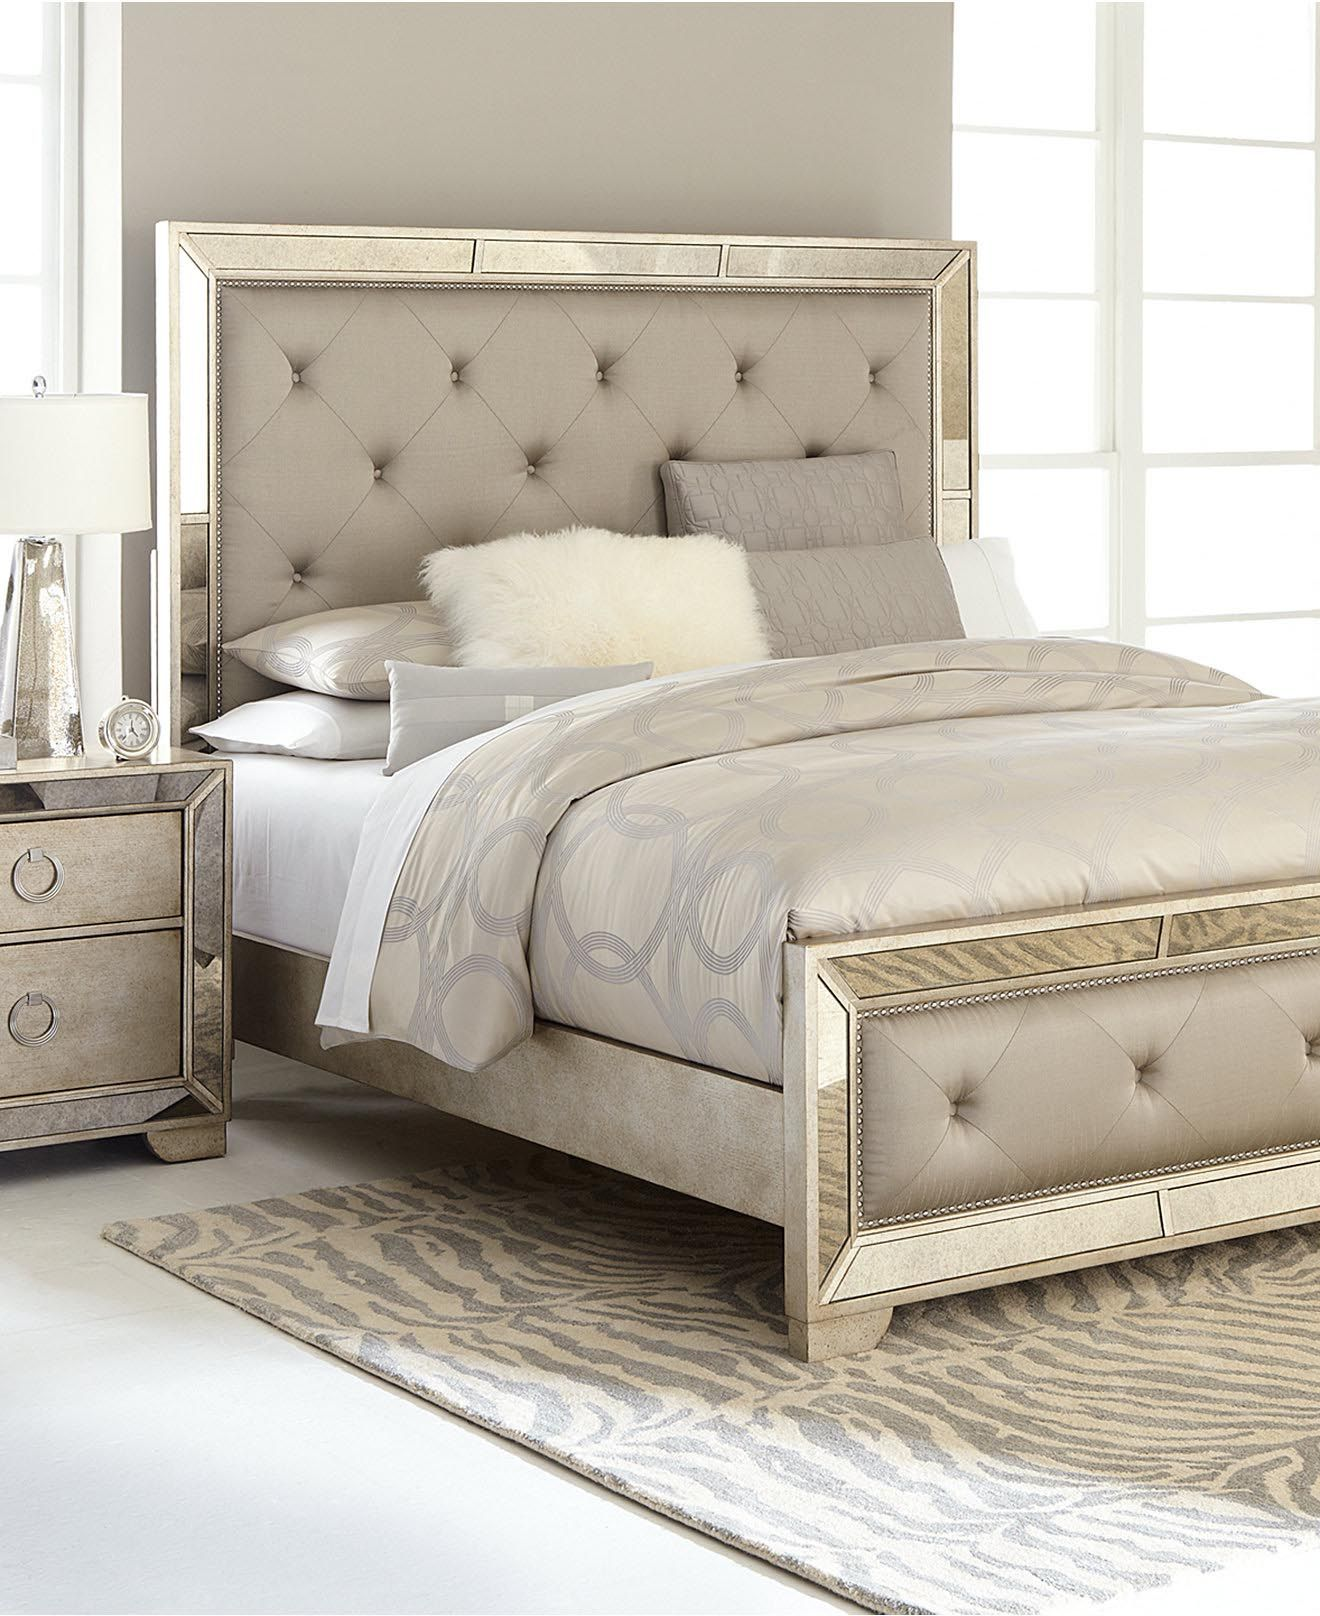 good looking mirrored glass bedroom furniture darbylanefurniture com collections complete bed frame set